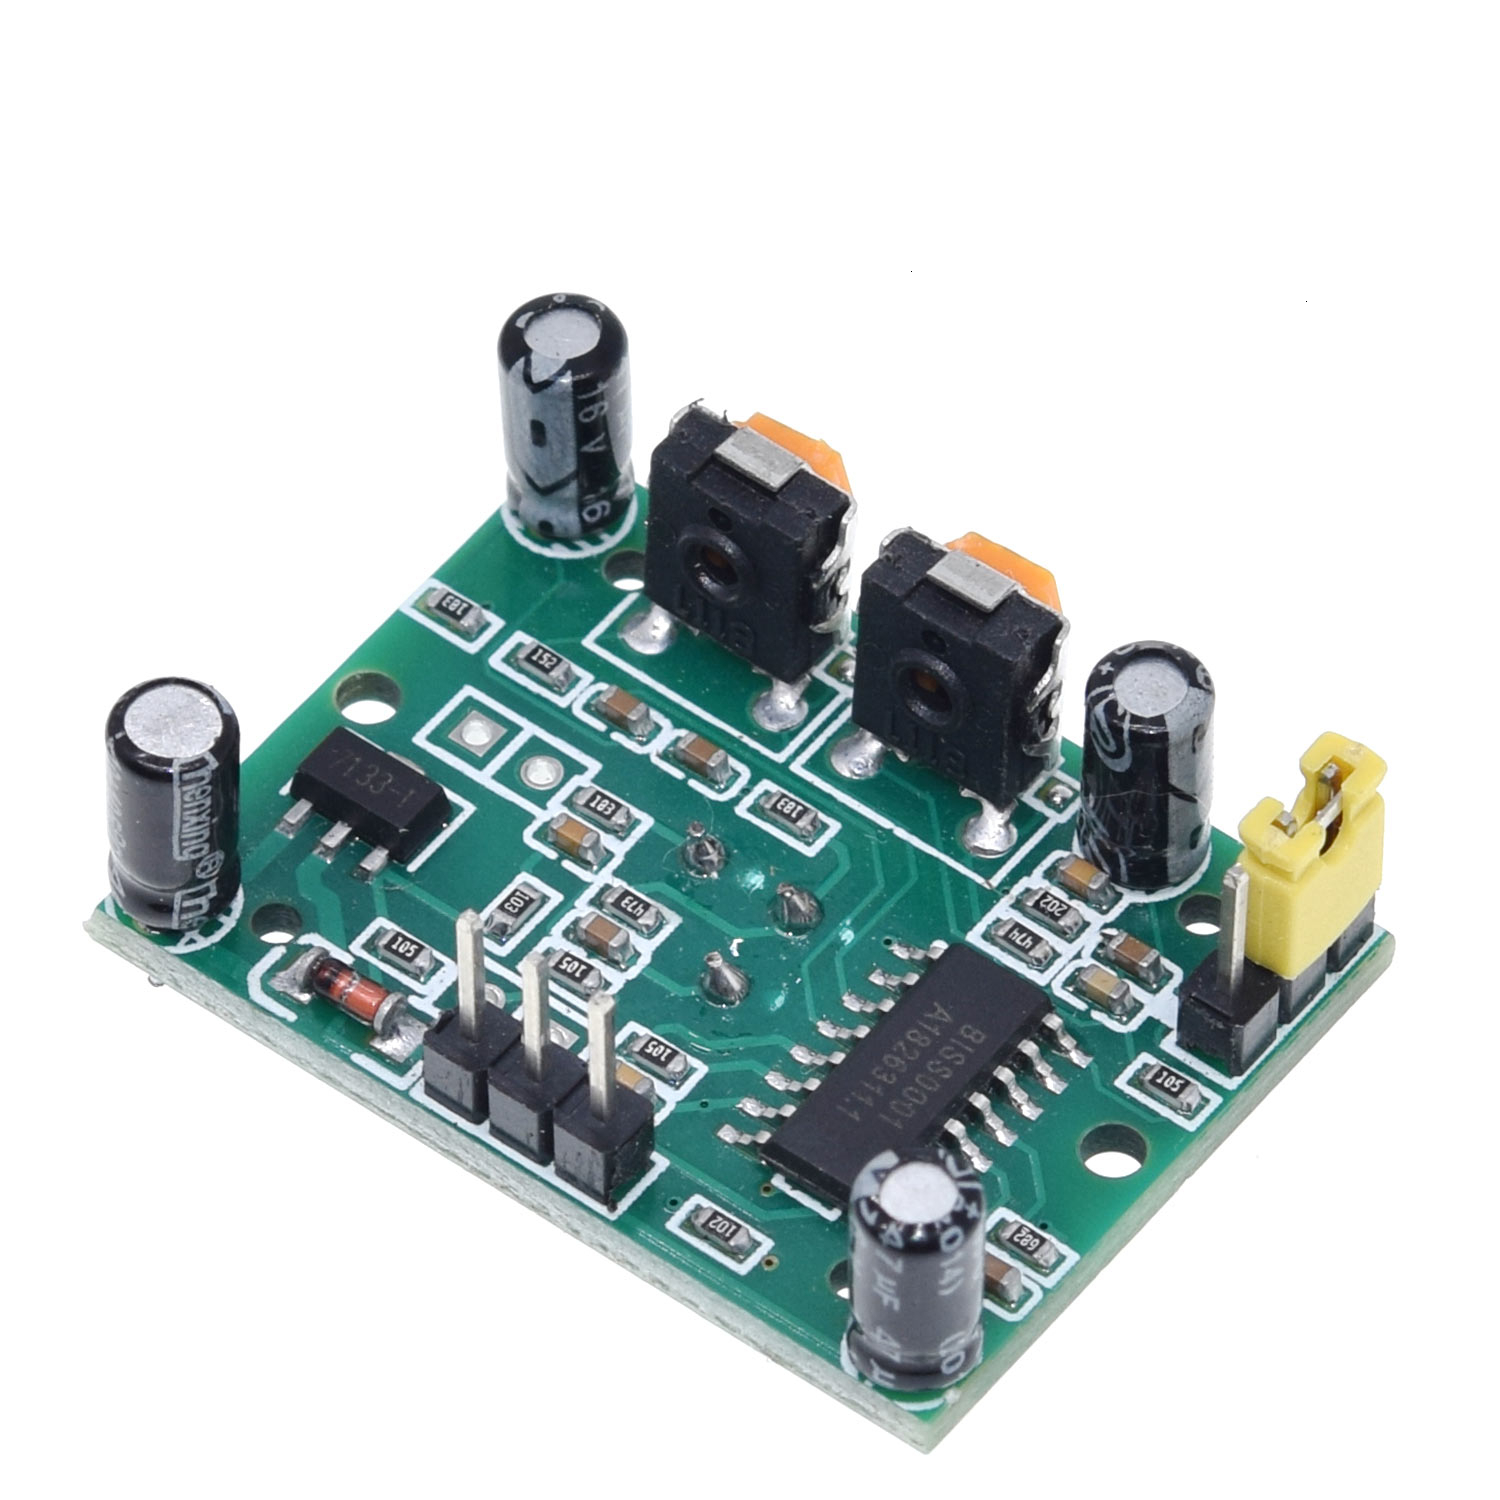 HC-SR501 Adjust IR Pyroelectric Infrared PIR Motion Sensor Detector Module for arduino for raspberry pi kits + Case